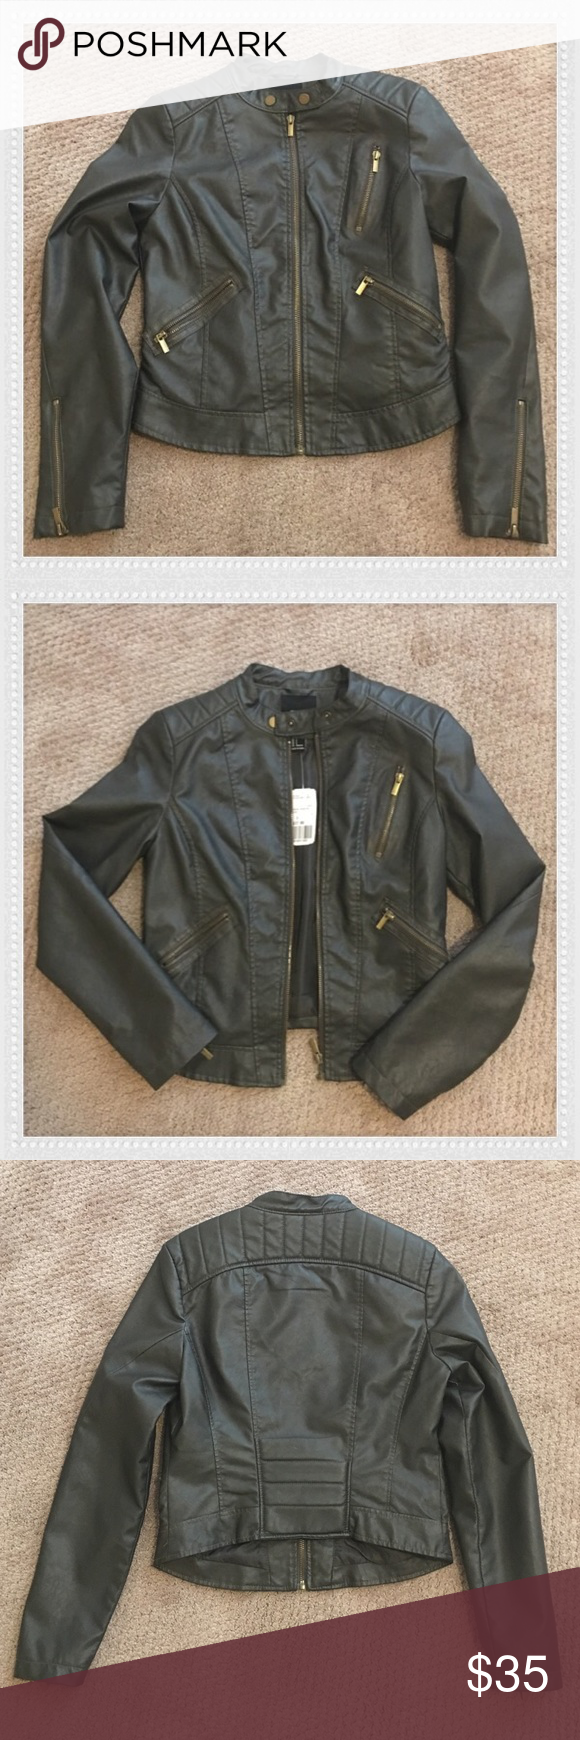 NEW Moto Jacket Brand new olive faux zip-up leather Moto jacket from Forever 21.                                                             Three gold zipper pockets on front of jacket and zipper sleeves.                                                       Two button closure at the collar.                            Great detail on the back of jacket. High/low and fitted style.                                                                 Classic and expensive looking piece! Forever 21…